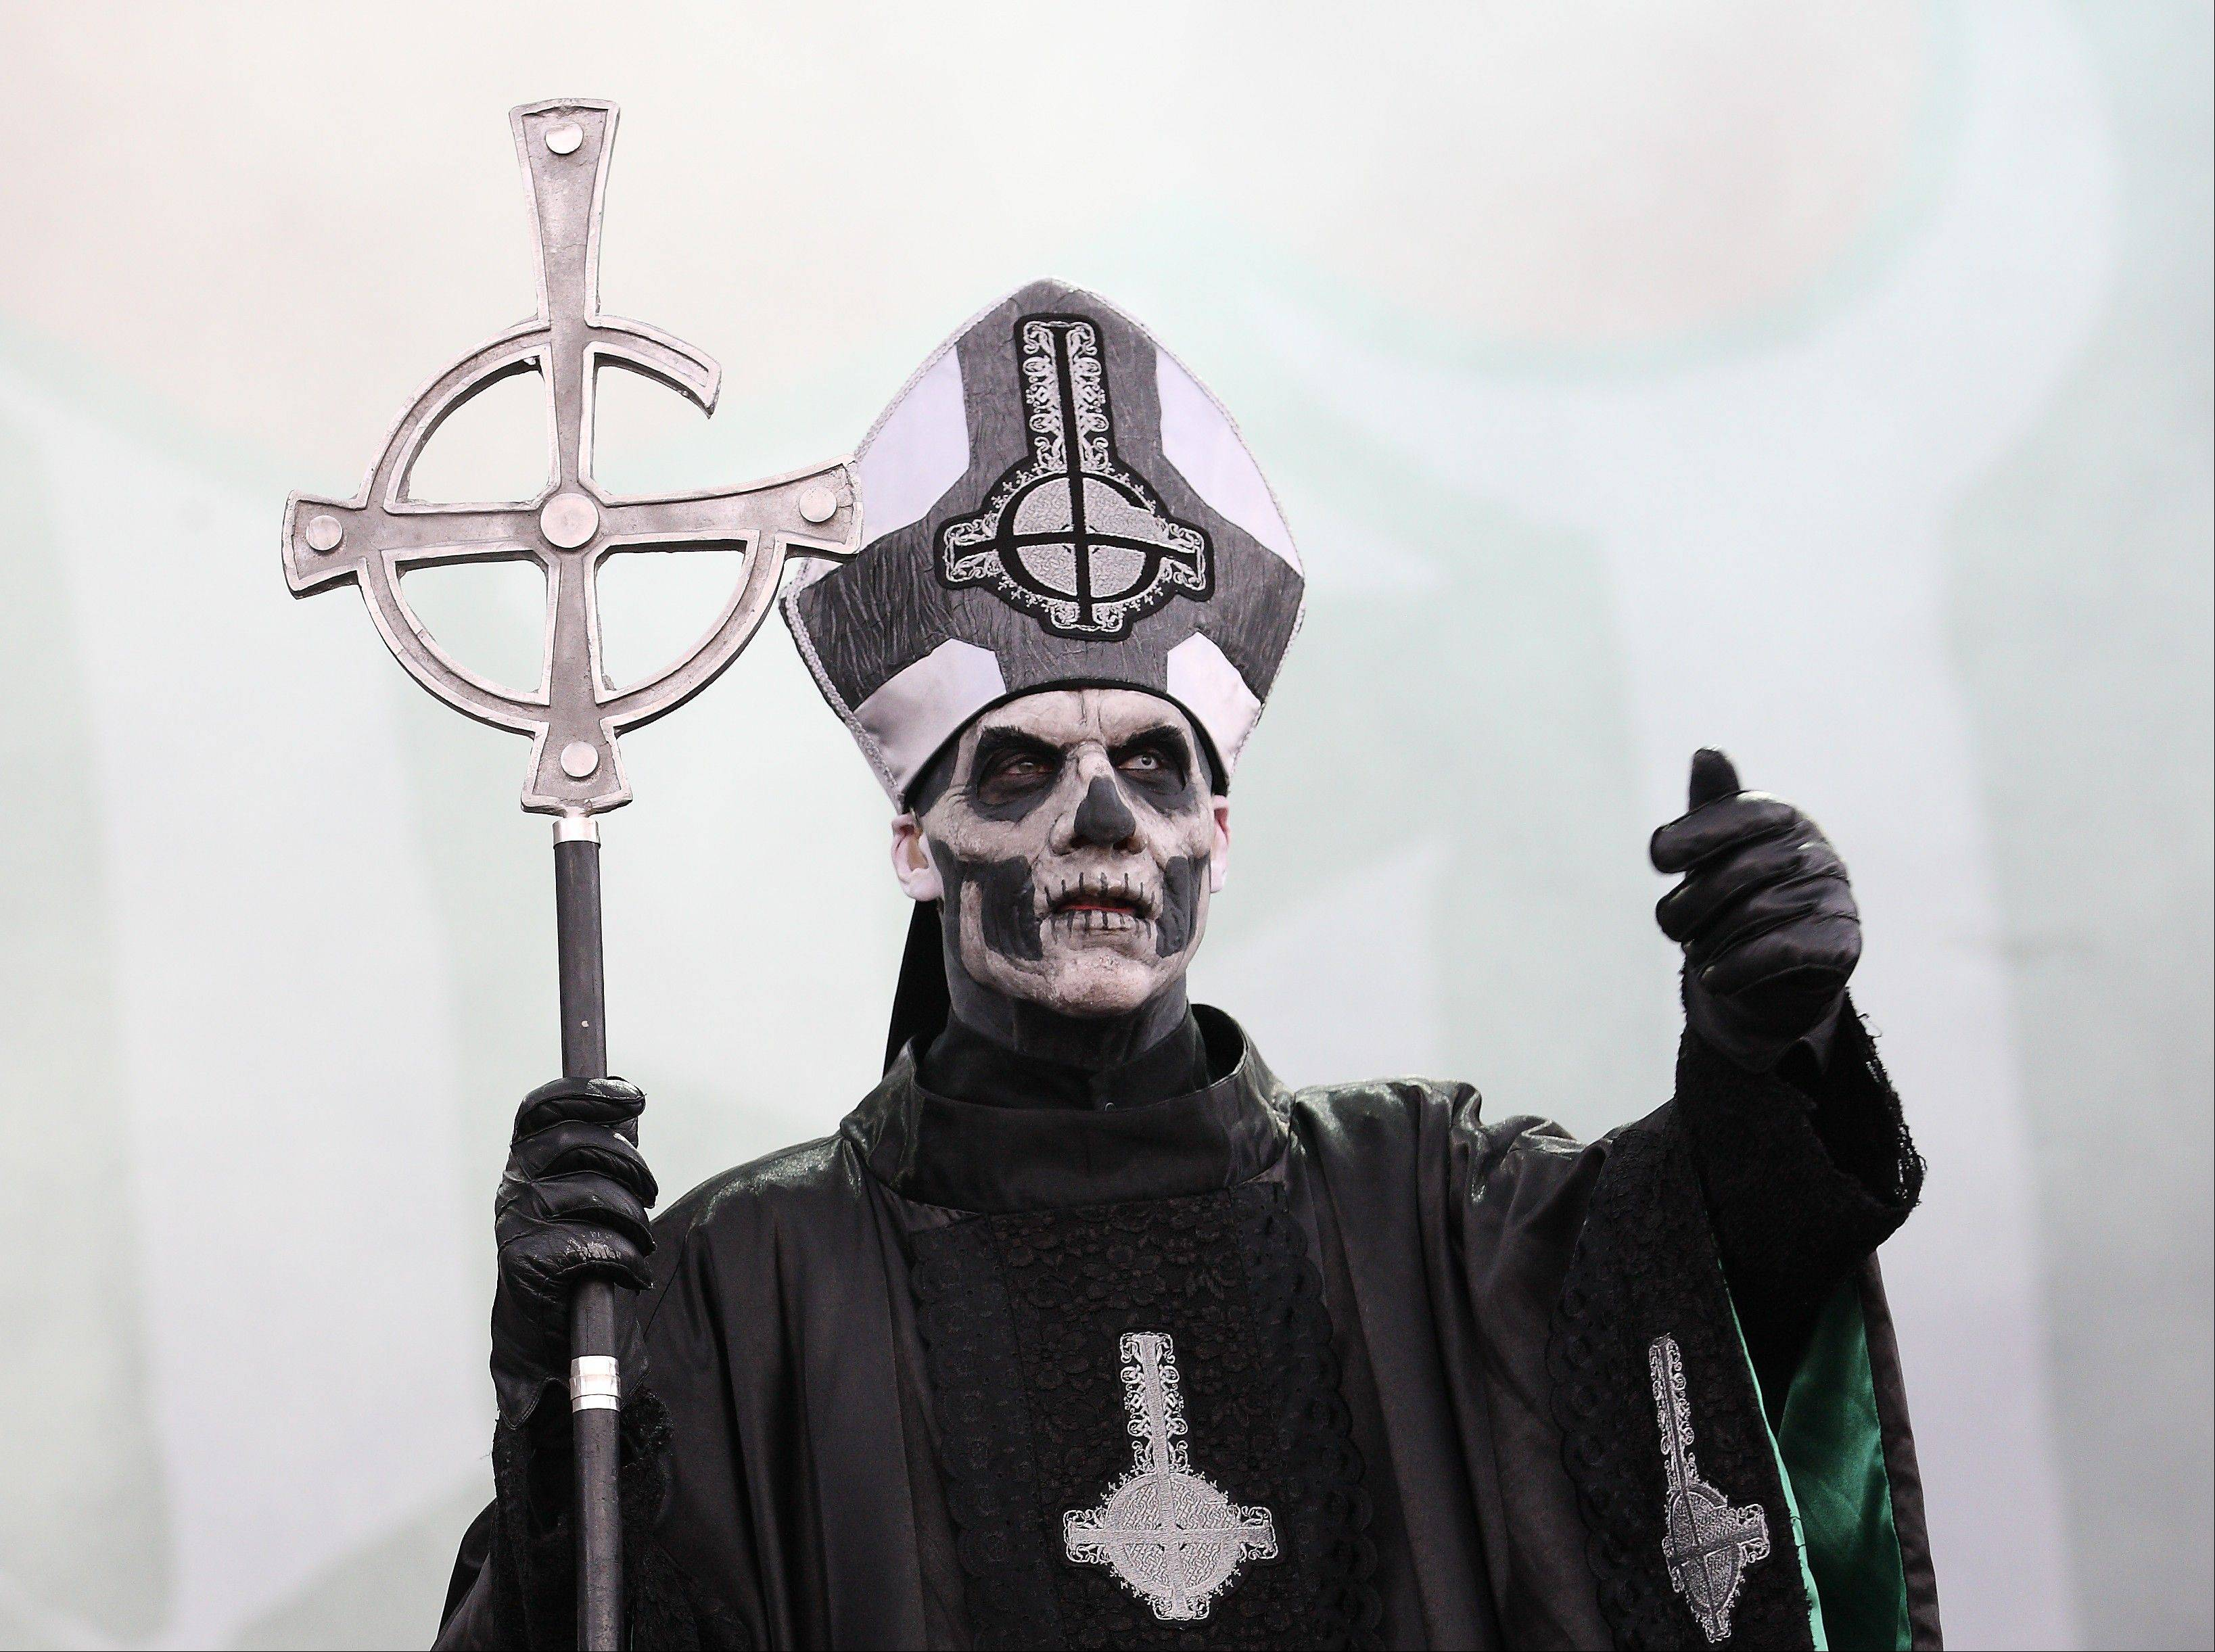 Papa Emeritus II of the Swedish band Ghost BC takes the stage on day 1 of Lollapalooza 2013 at Grant Park in Chicago Friday.